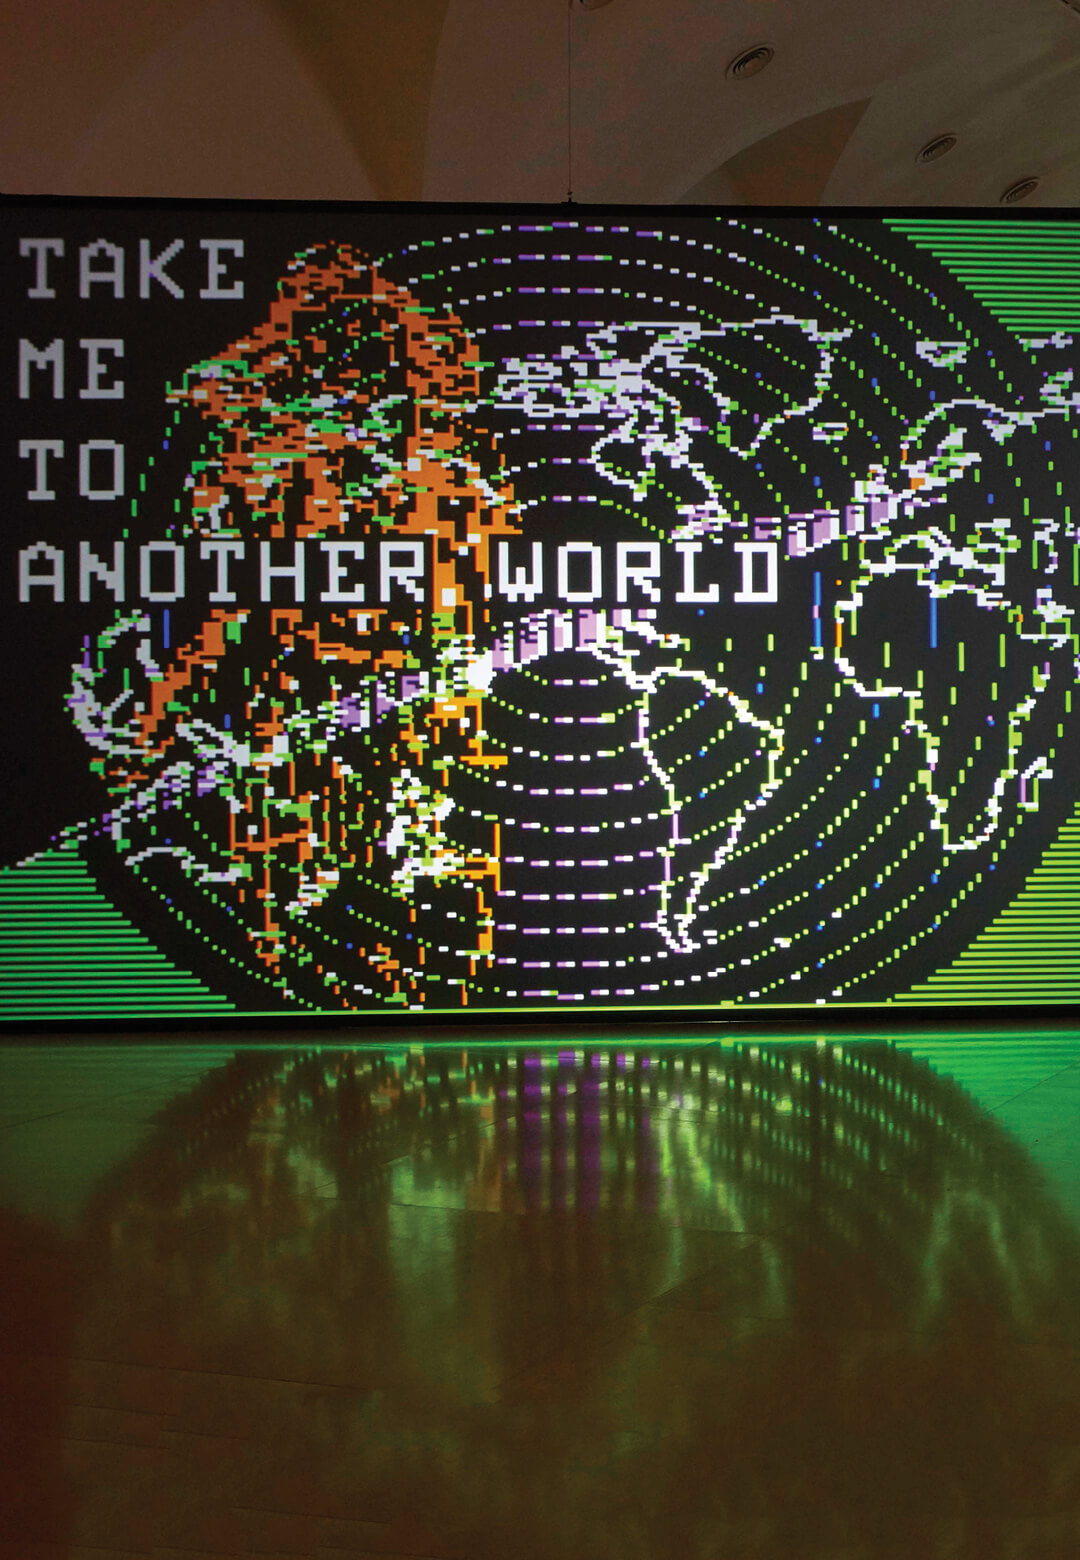 Installation view at Museo Reina Sofia | Take me to another world | Charlotte Johannesson | STIRworld